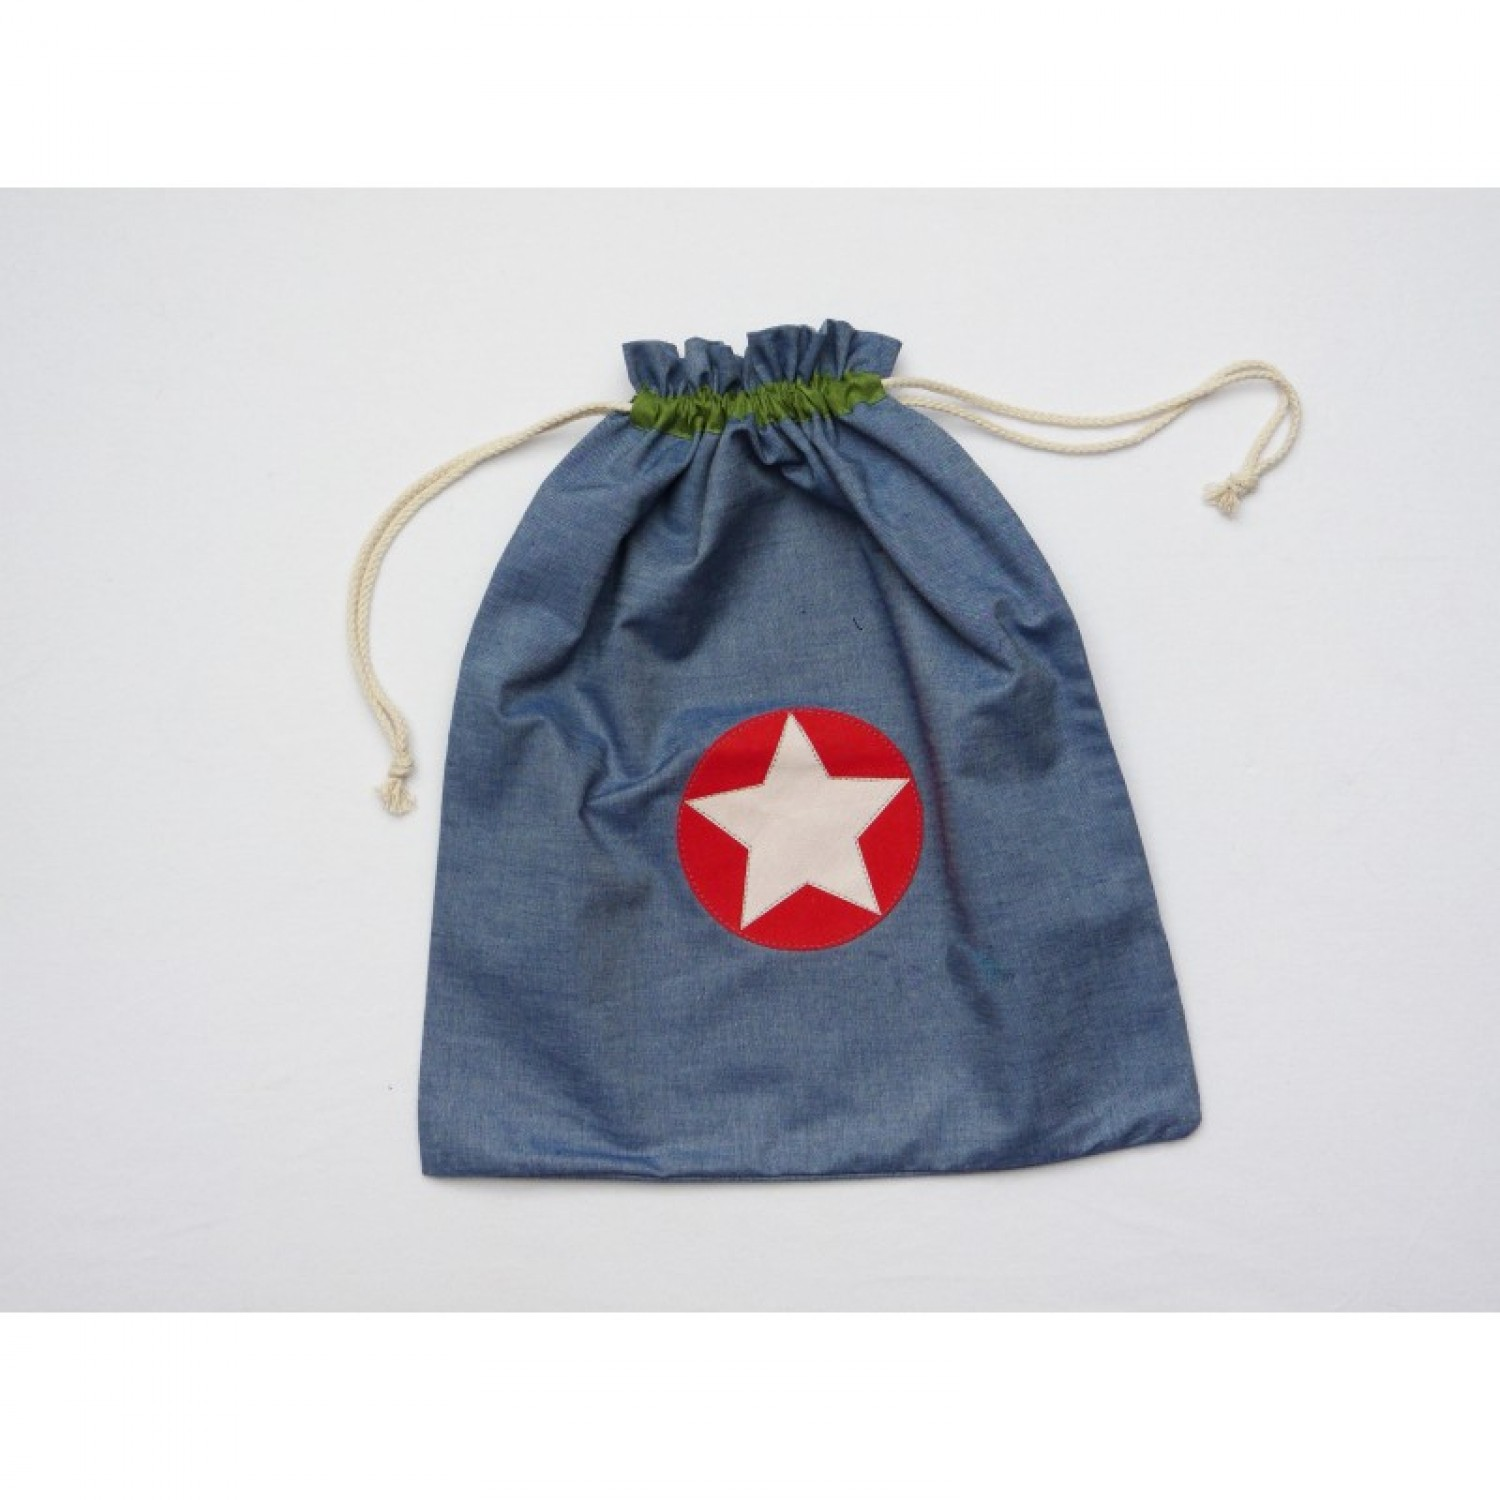 Cloth Bag – Gym Bag STAR made of Organic Cotton